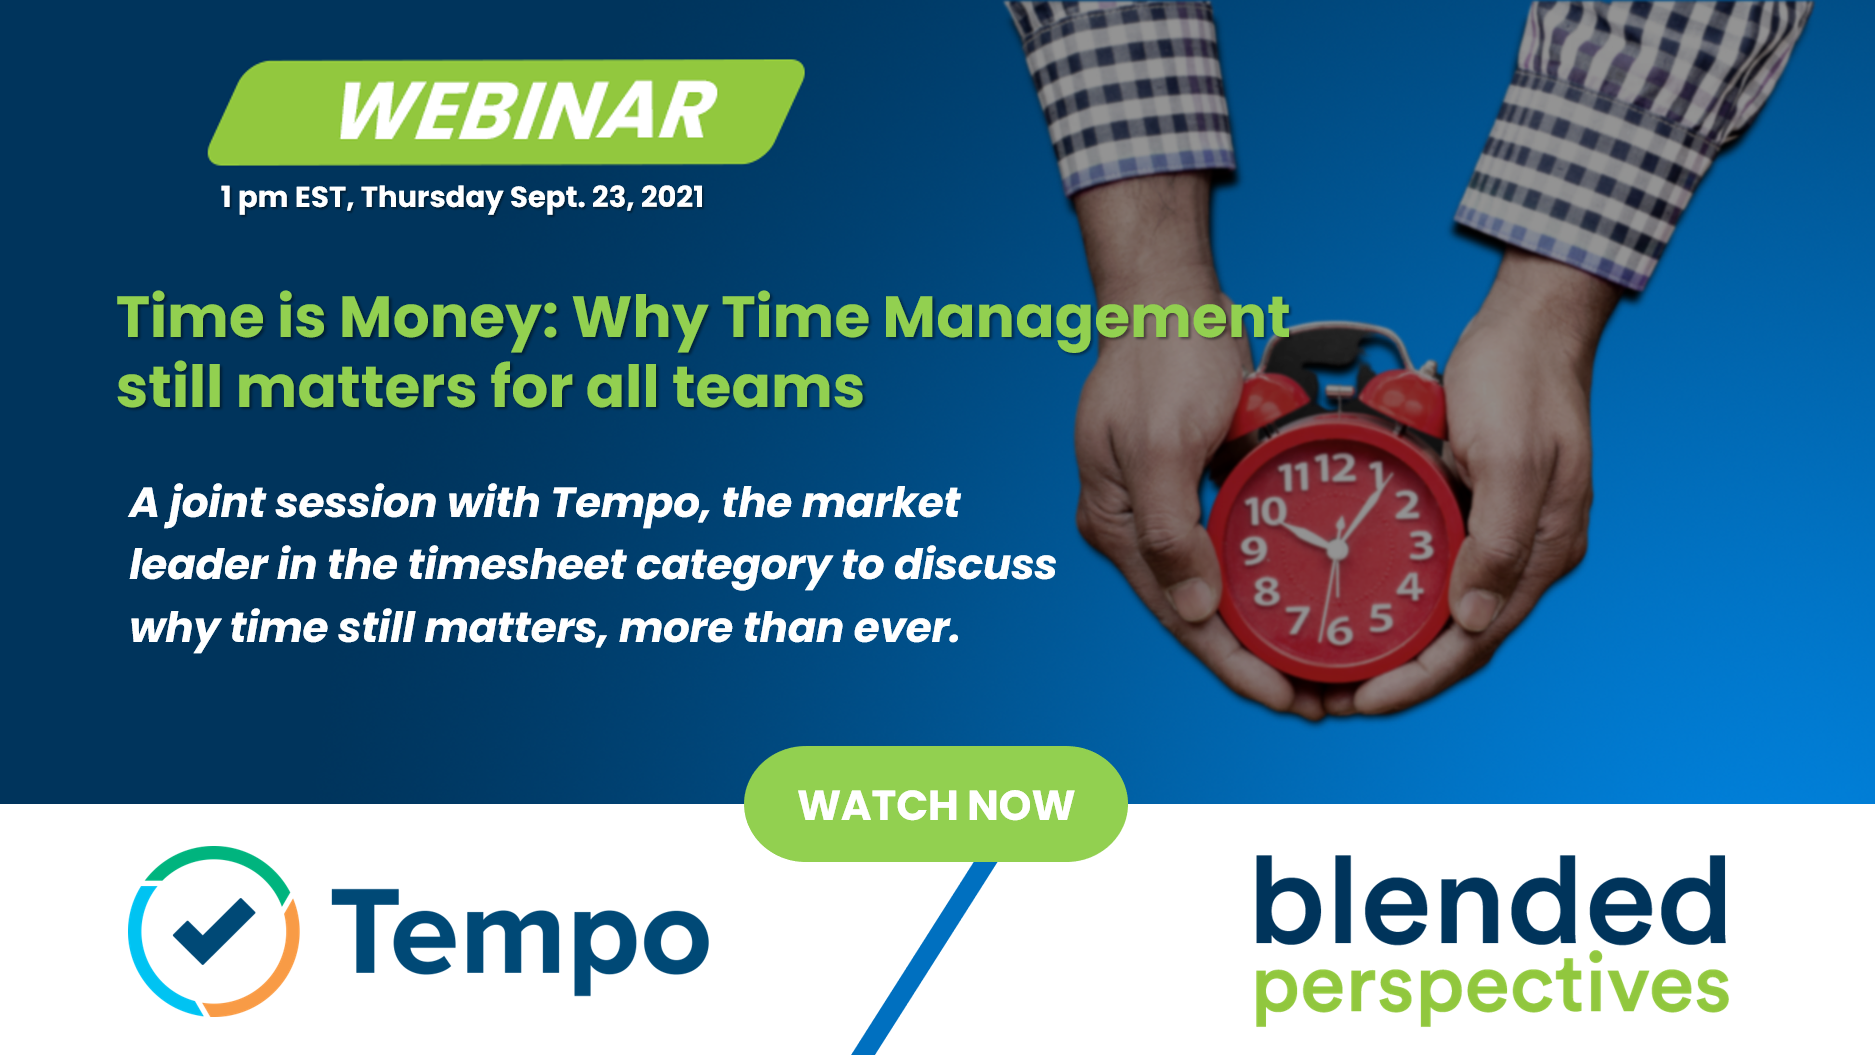 [Webinar] Time is Money - Why Time Management still matters for all teams 29